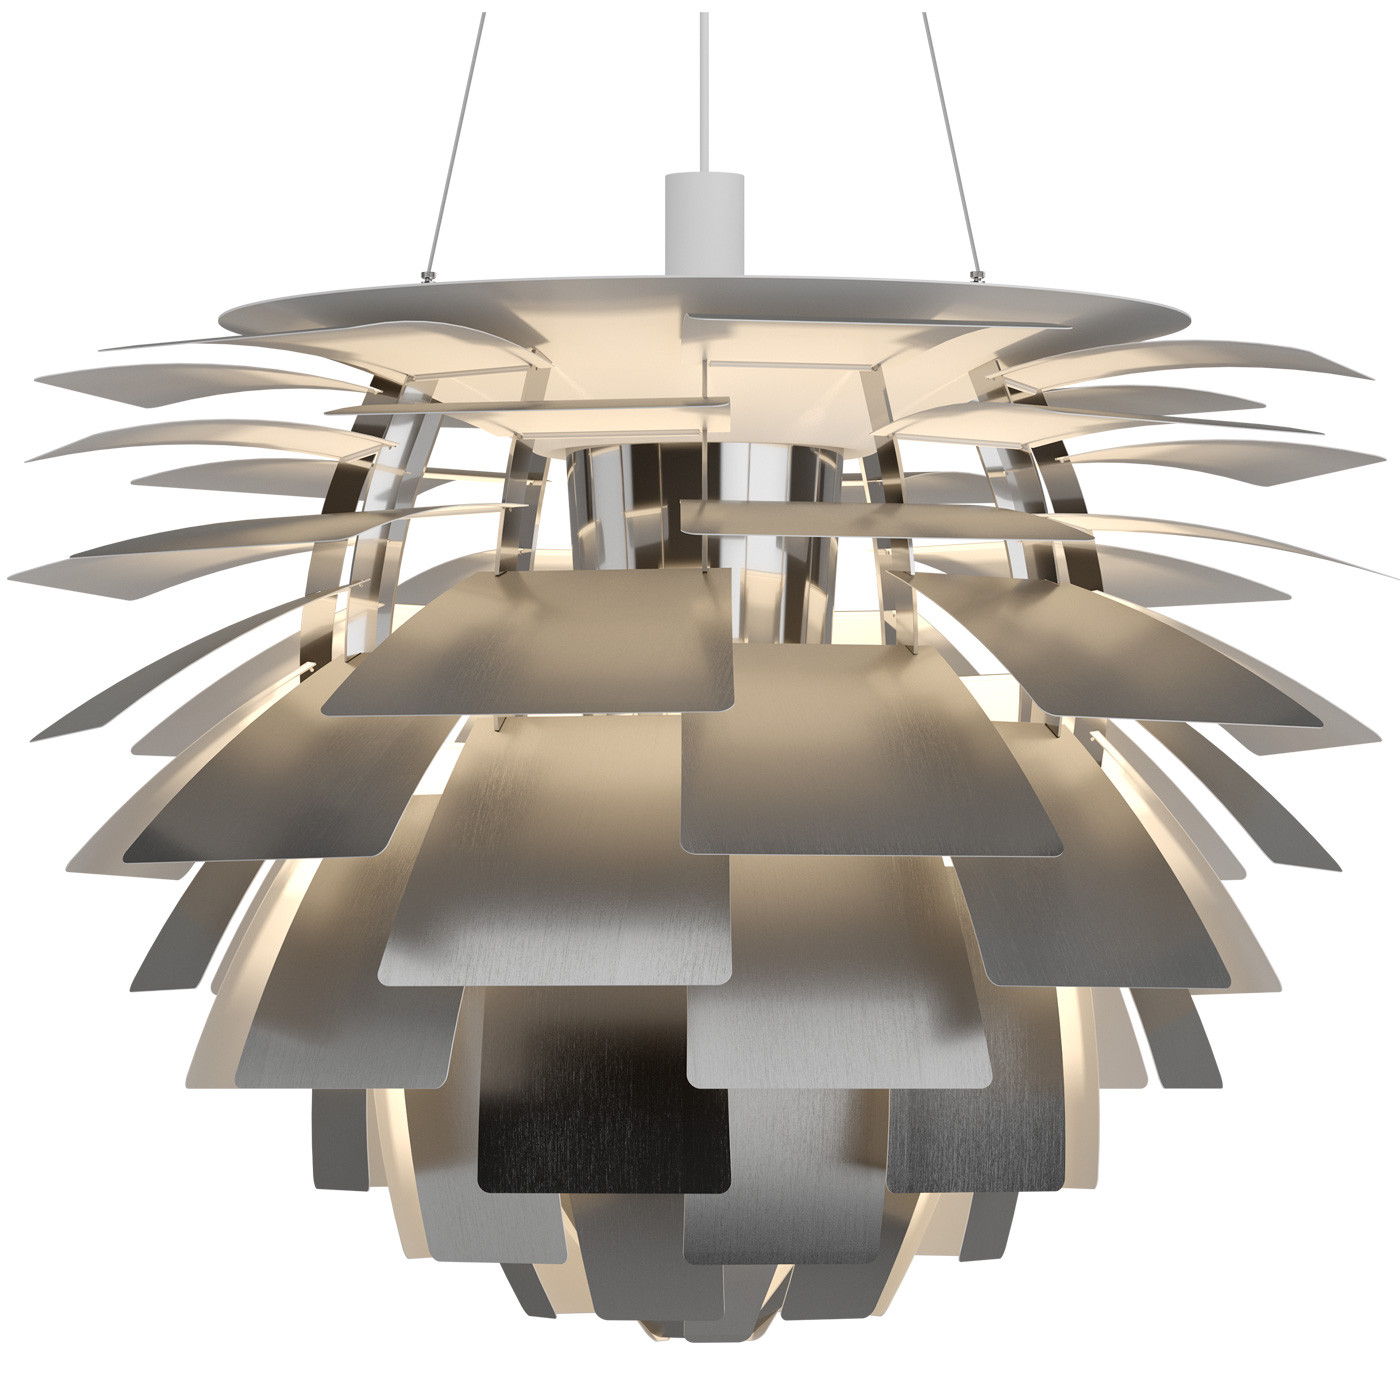 Louis Poulsen PH Artichoke 840 LED